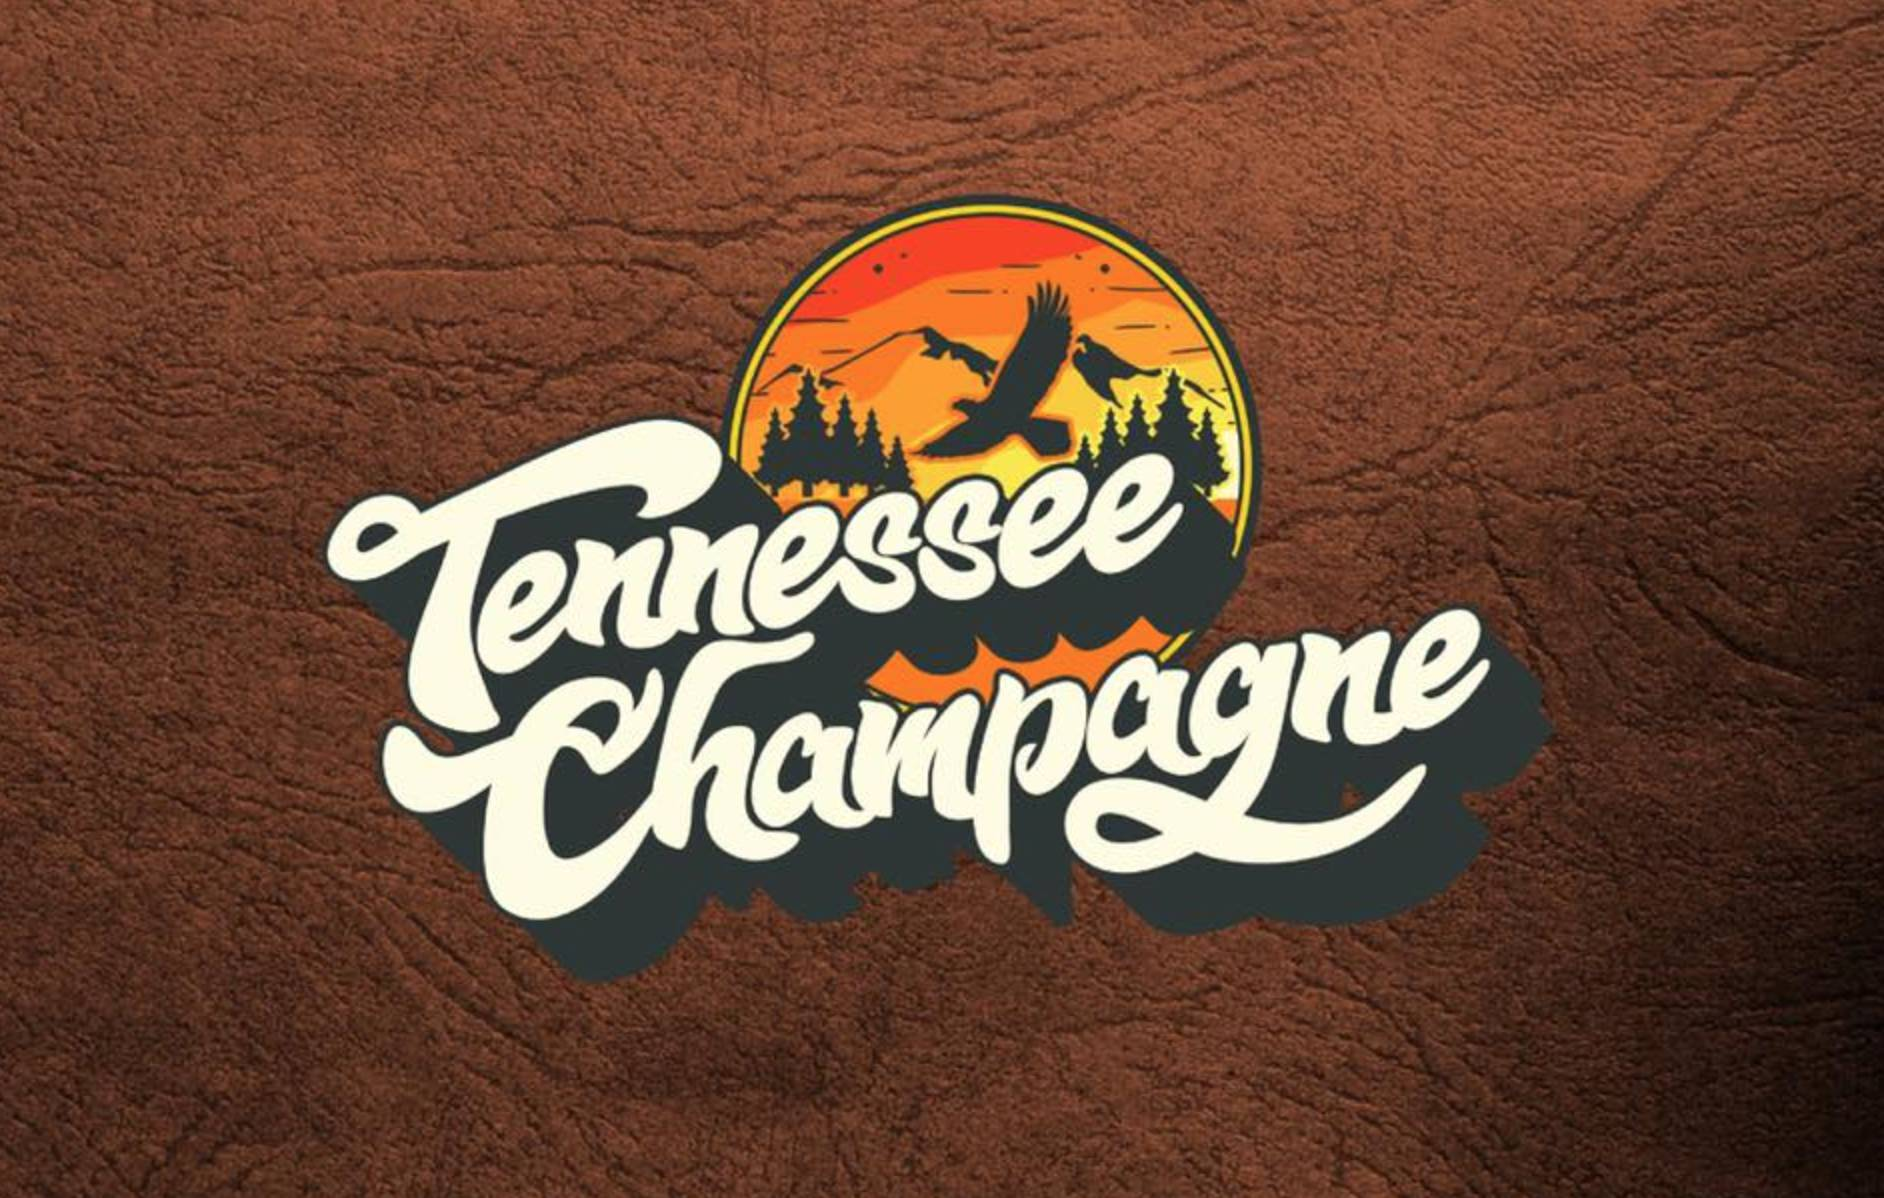 Live Music w/ Tennessee Champagne